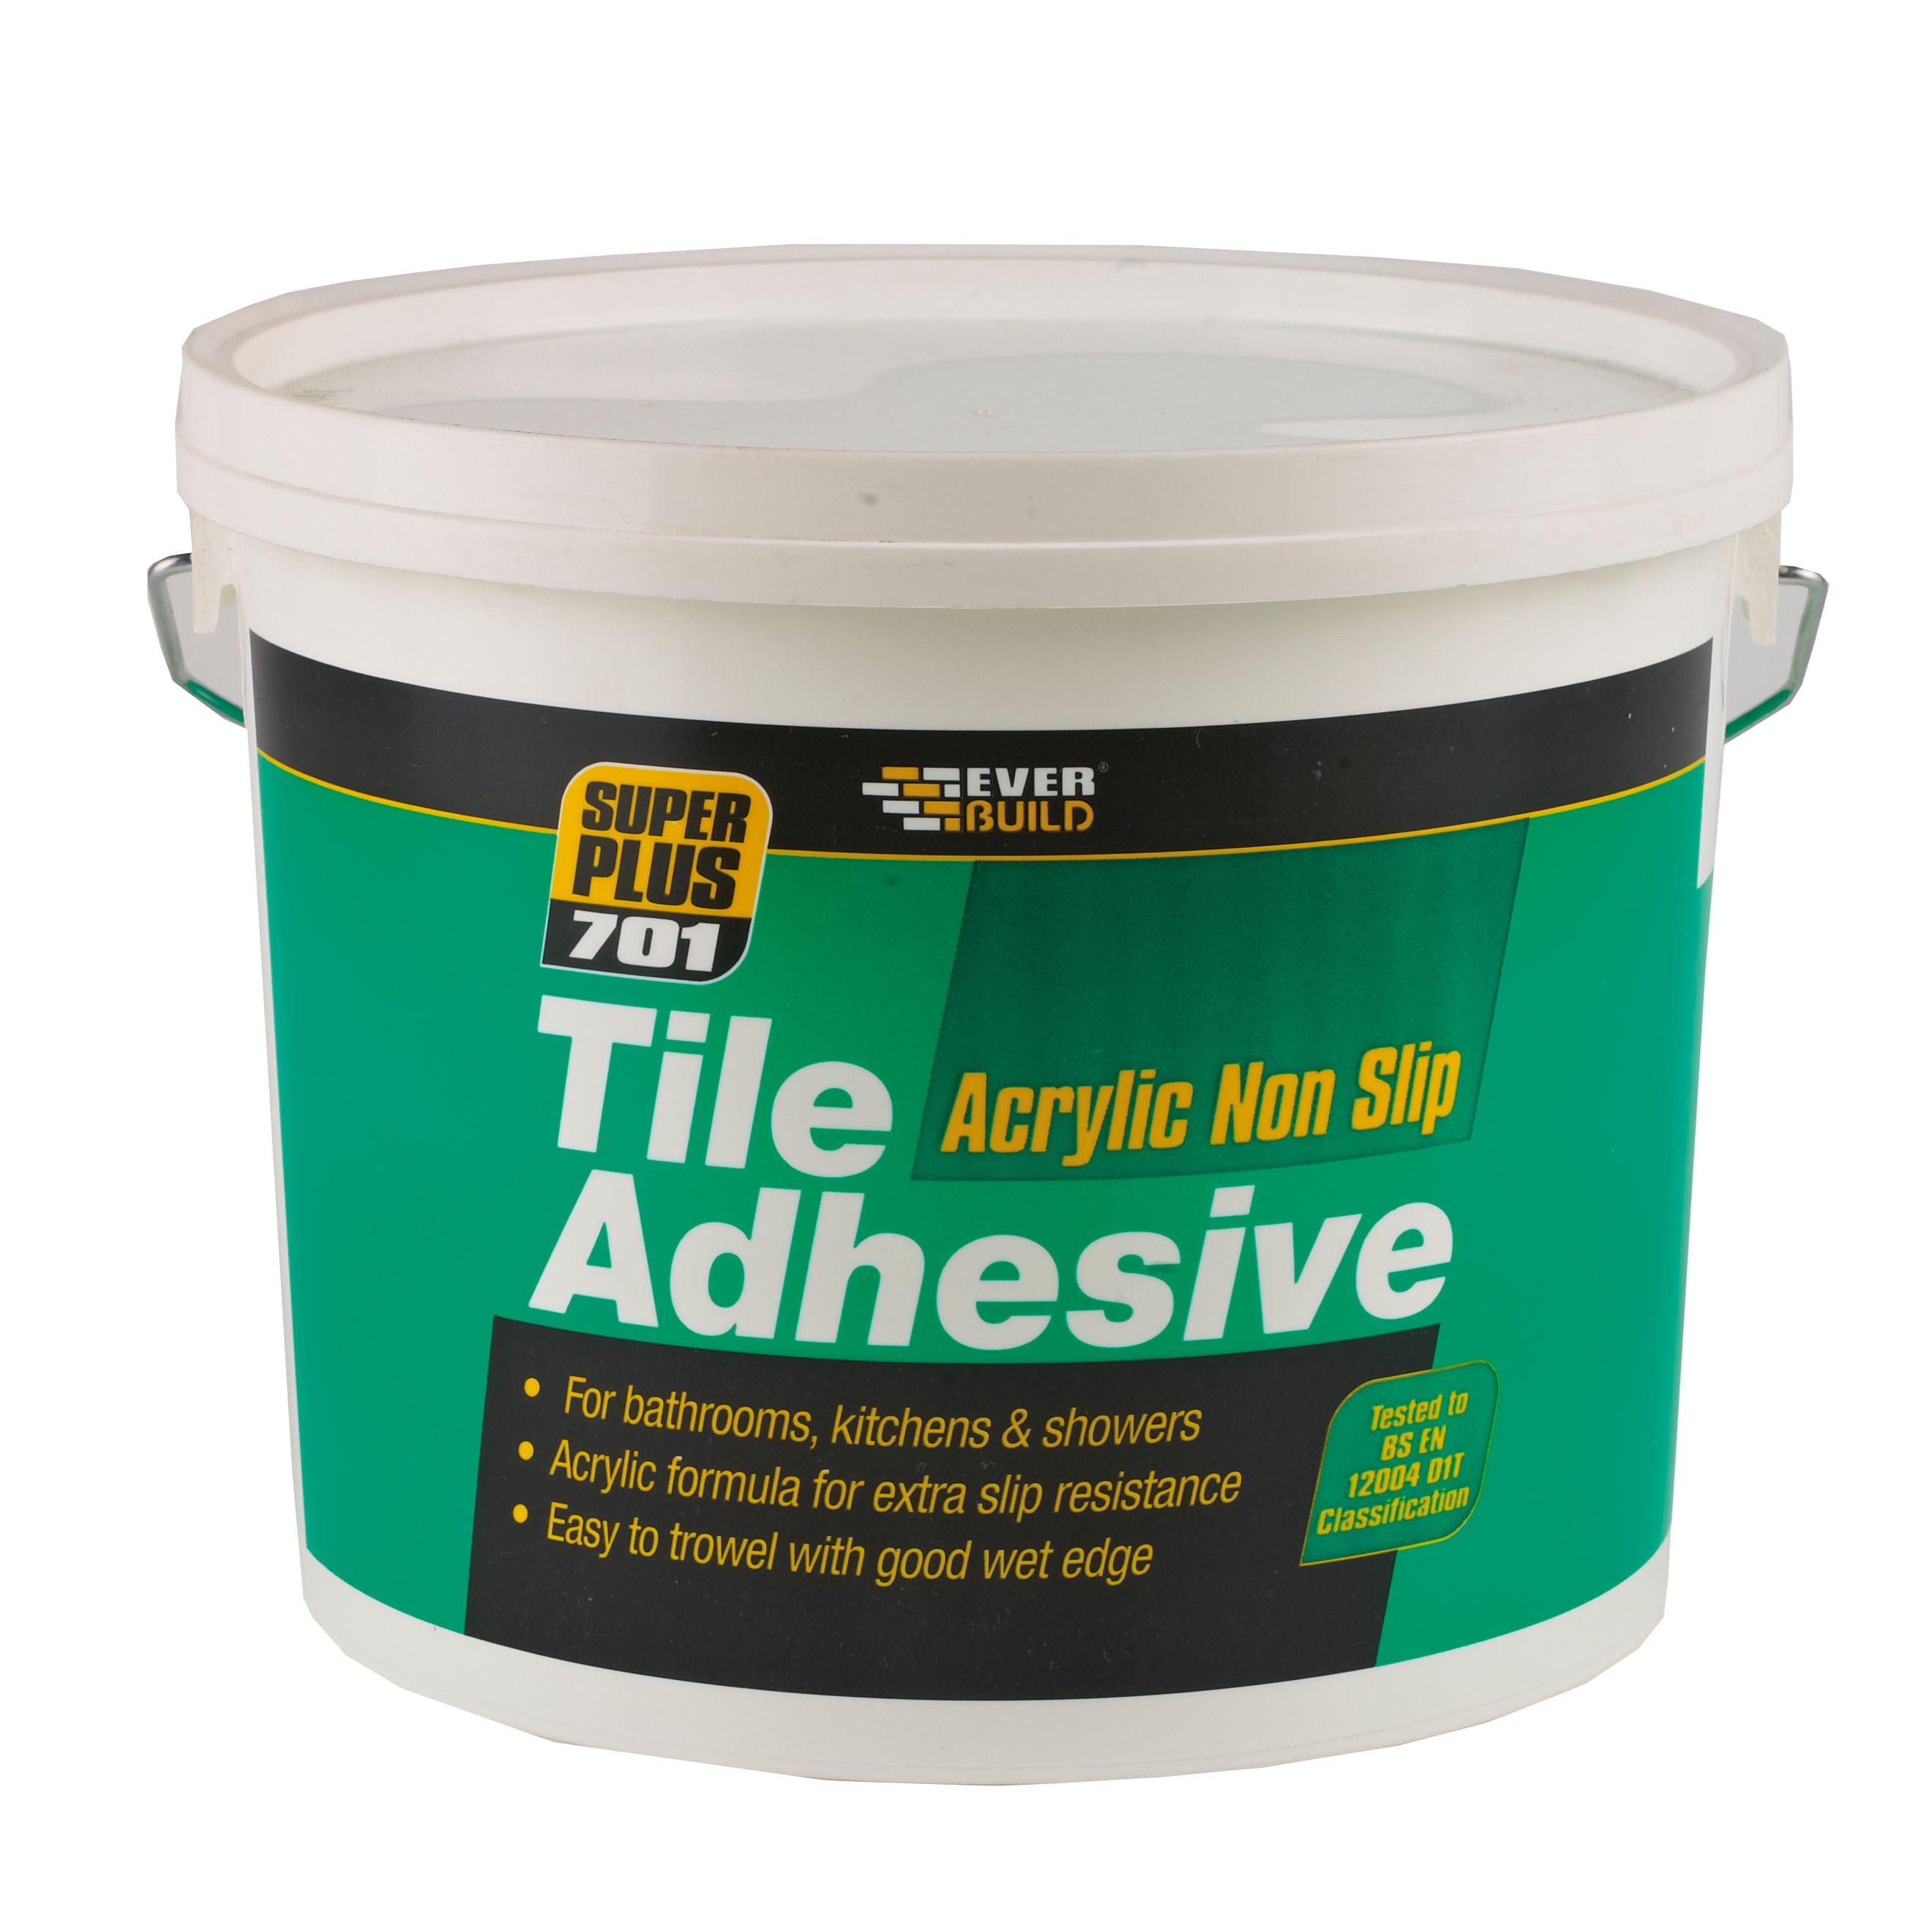 Bathroom Tile Adhesive And Grout: Everbuild 701 Non Slip Tile Adhesive - 10 Litre